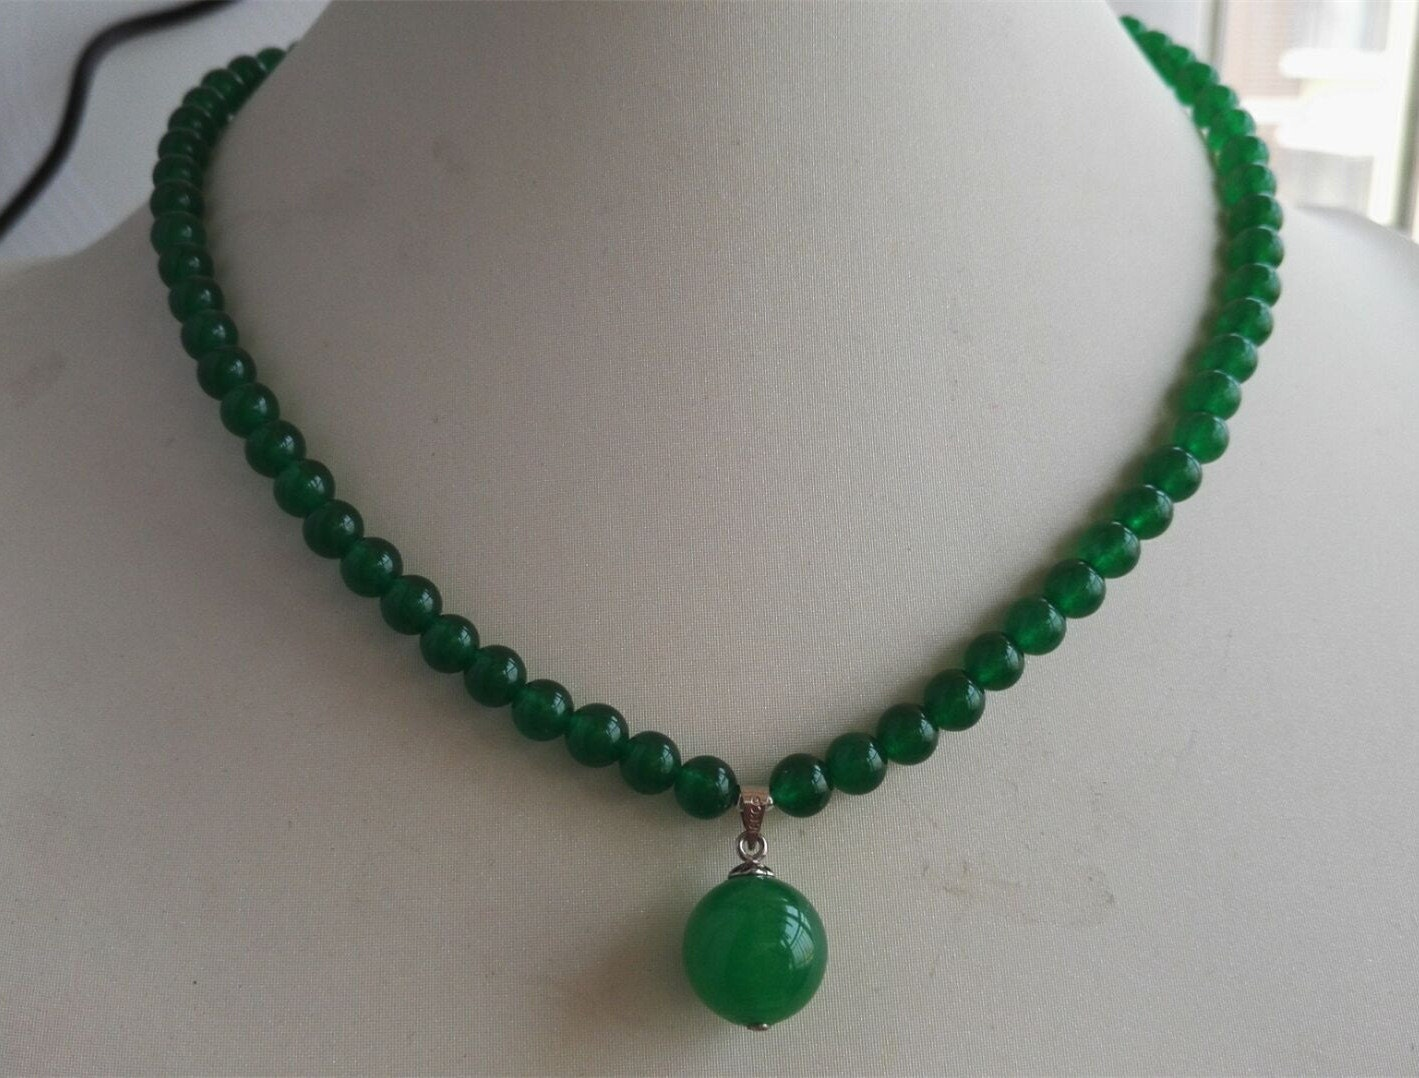 Jade necklace green jade necklace jade necklace pendant 6mm for Pictures of jade jewelry